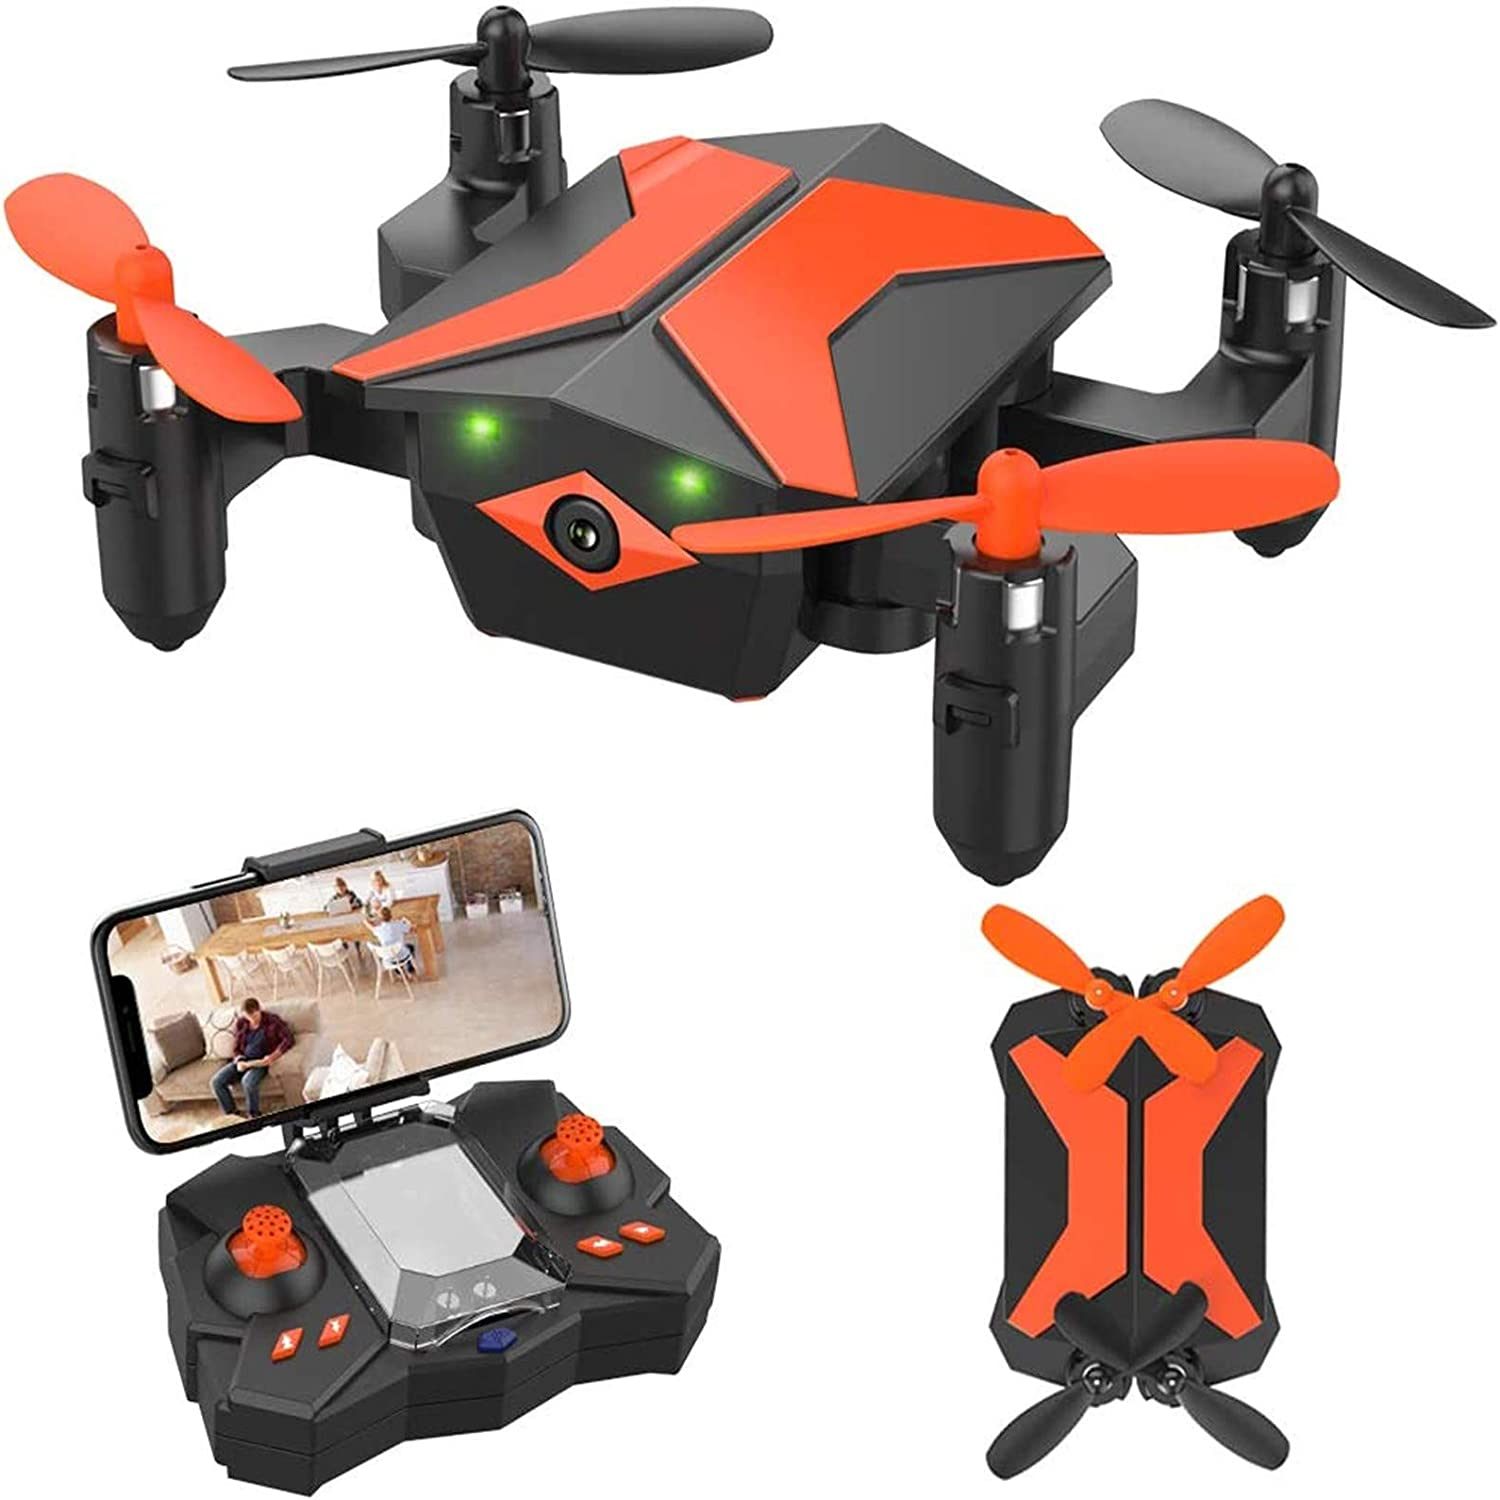 5 compact drones ideal for newbies and hobbyists